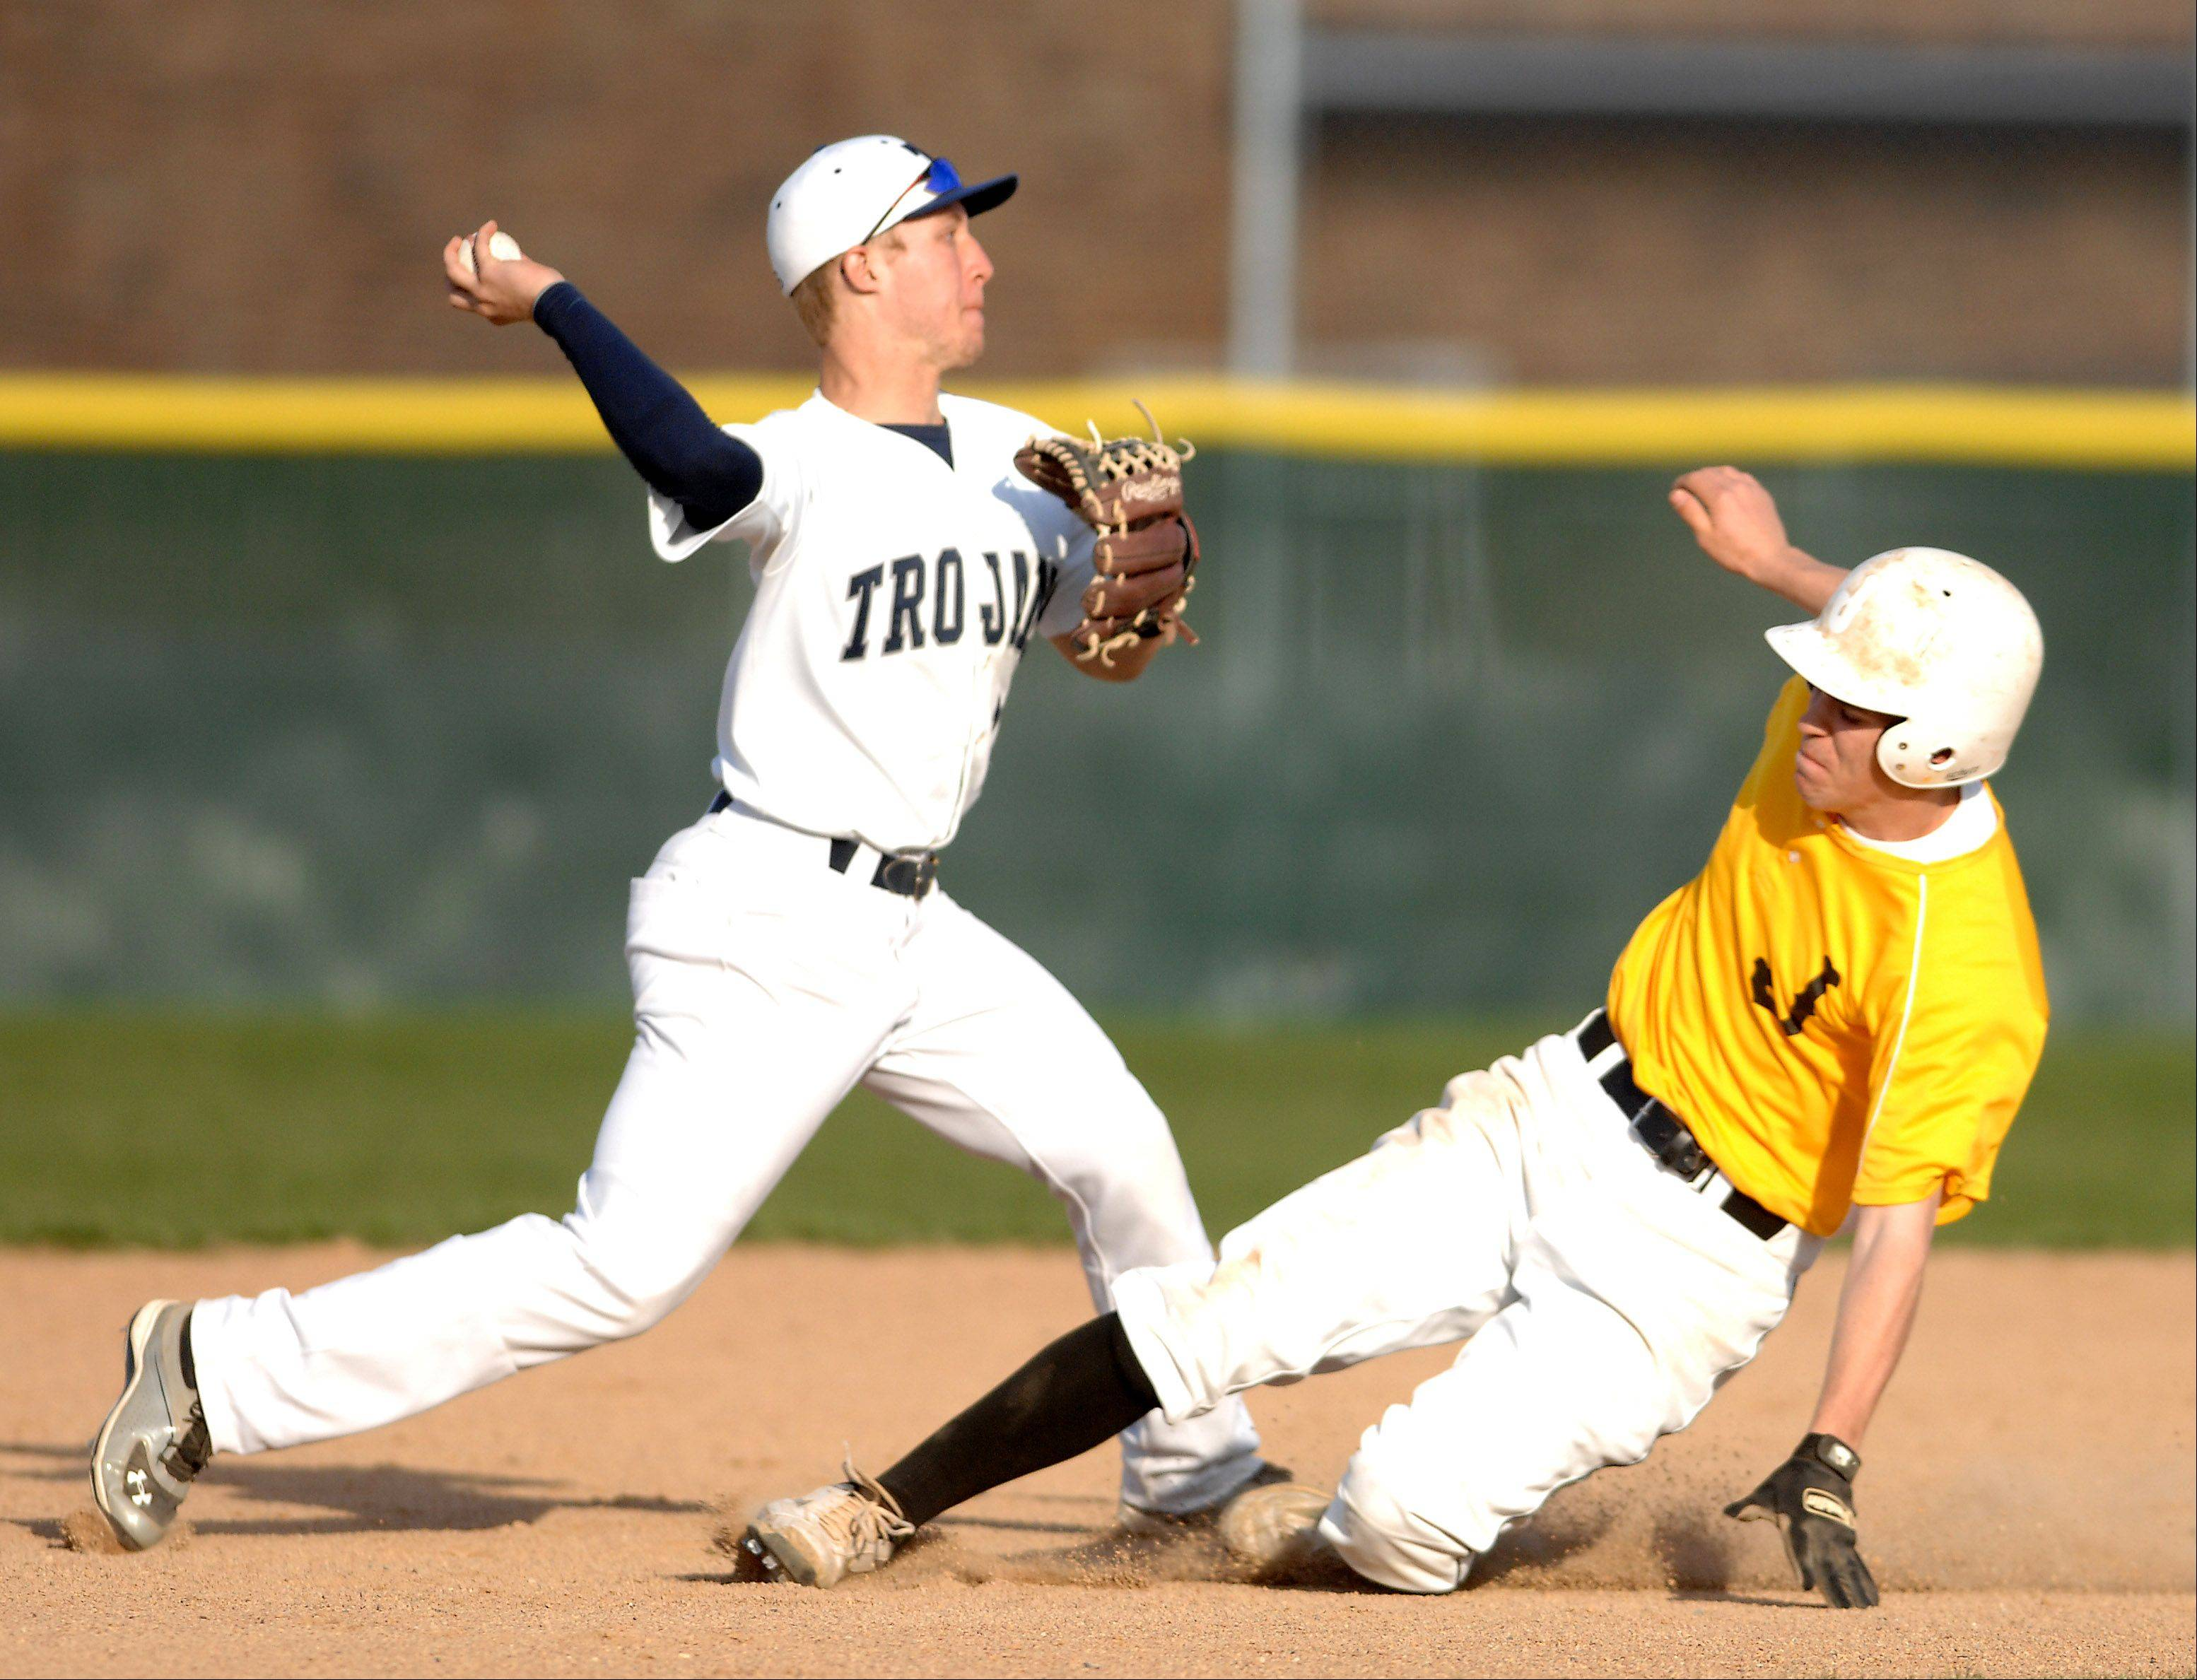 Cary-Grove's Jeremy Vasquez turns a double play as Matt Hickey of Jacobs bears down on him during Friday's game in Cary.